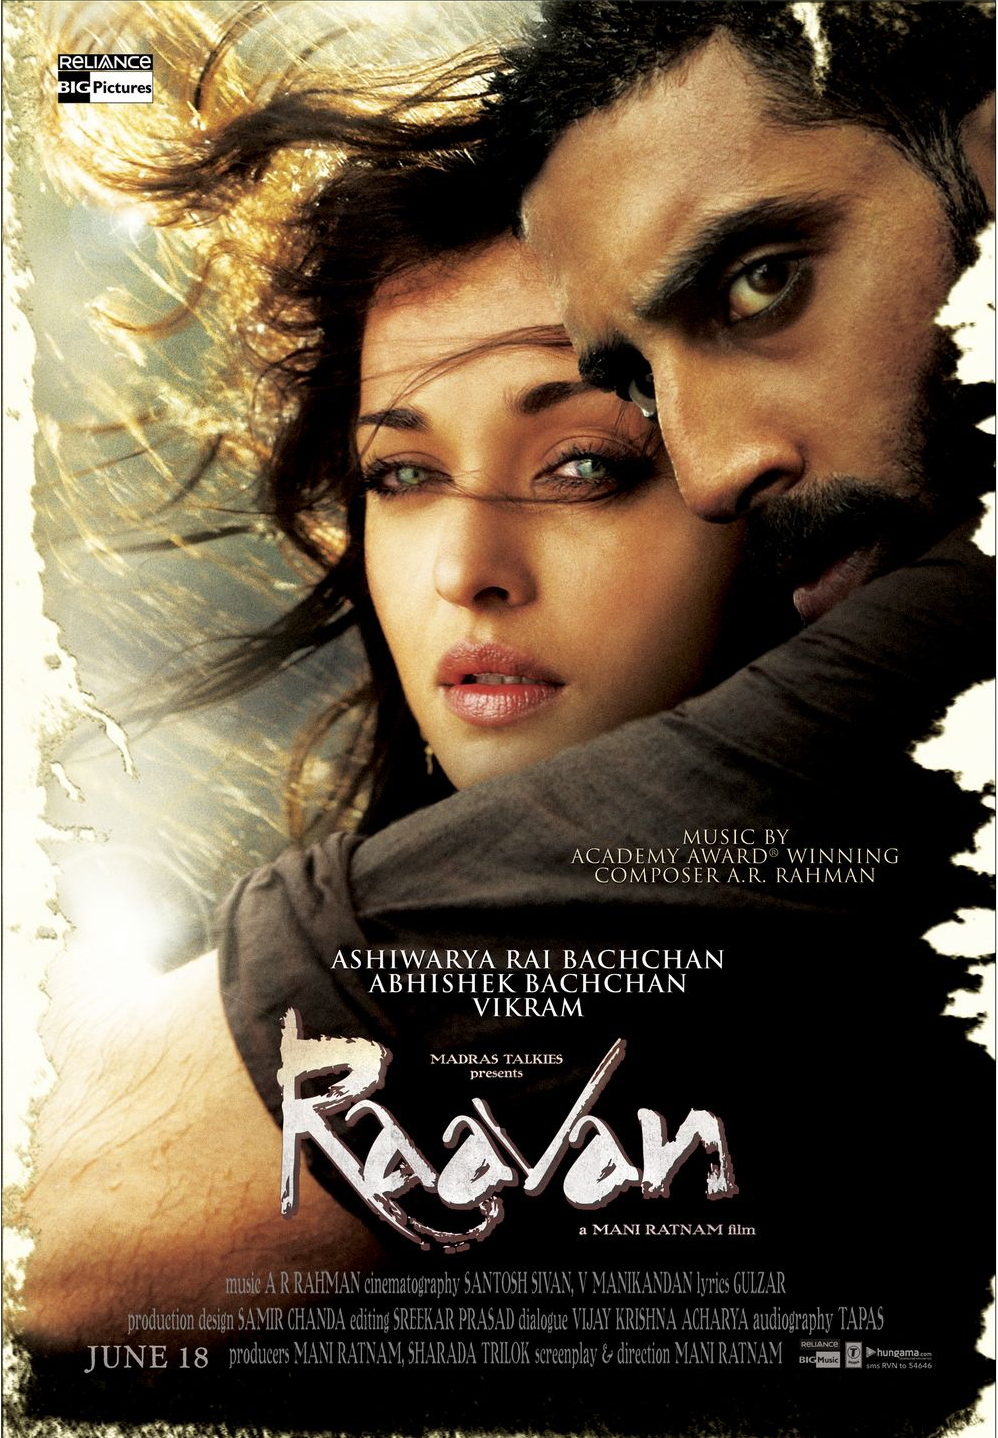 Raavan (2010) Technical Specifications